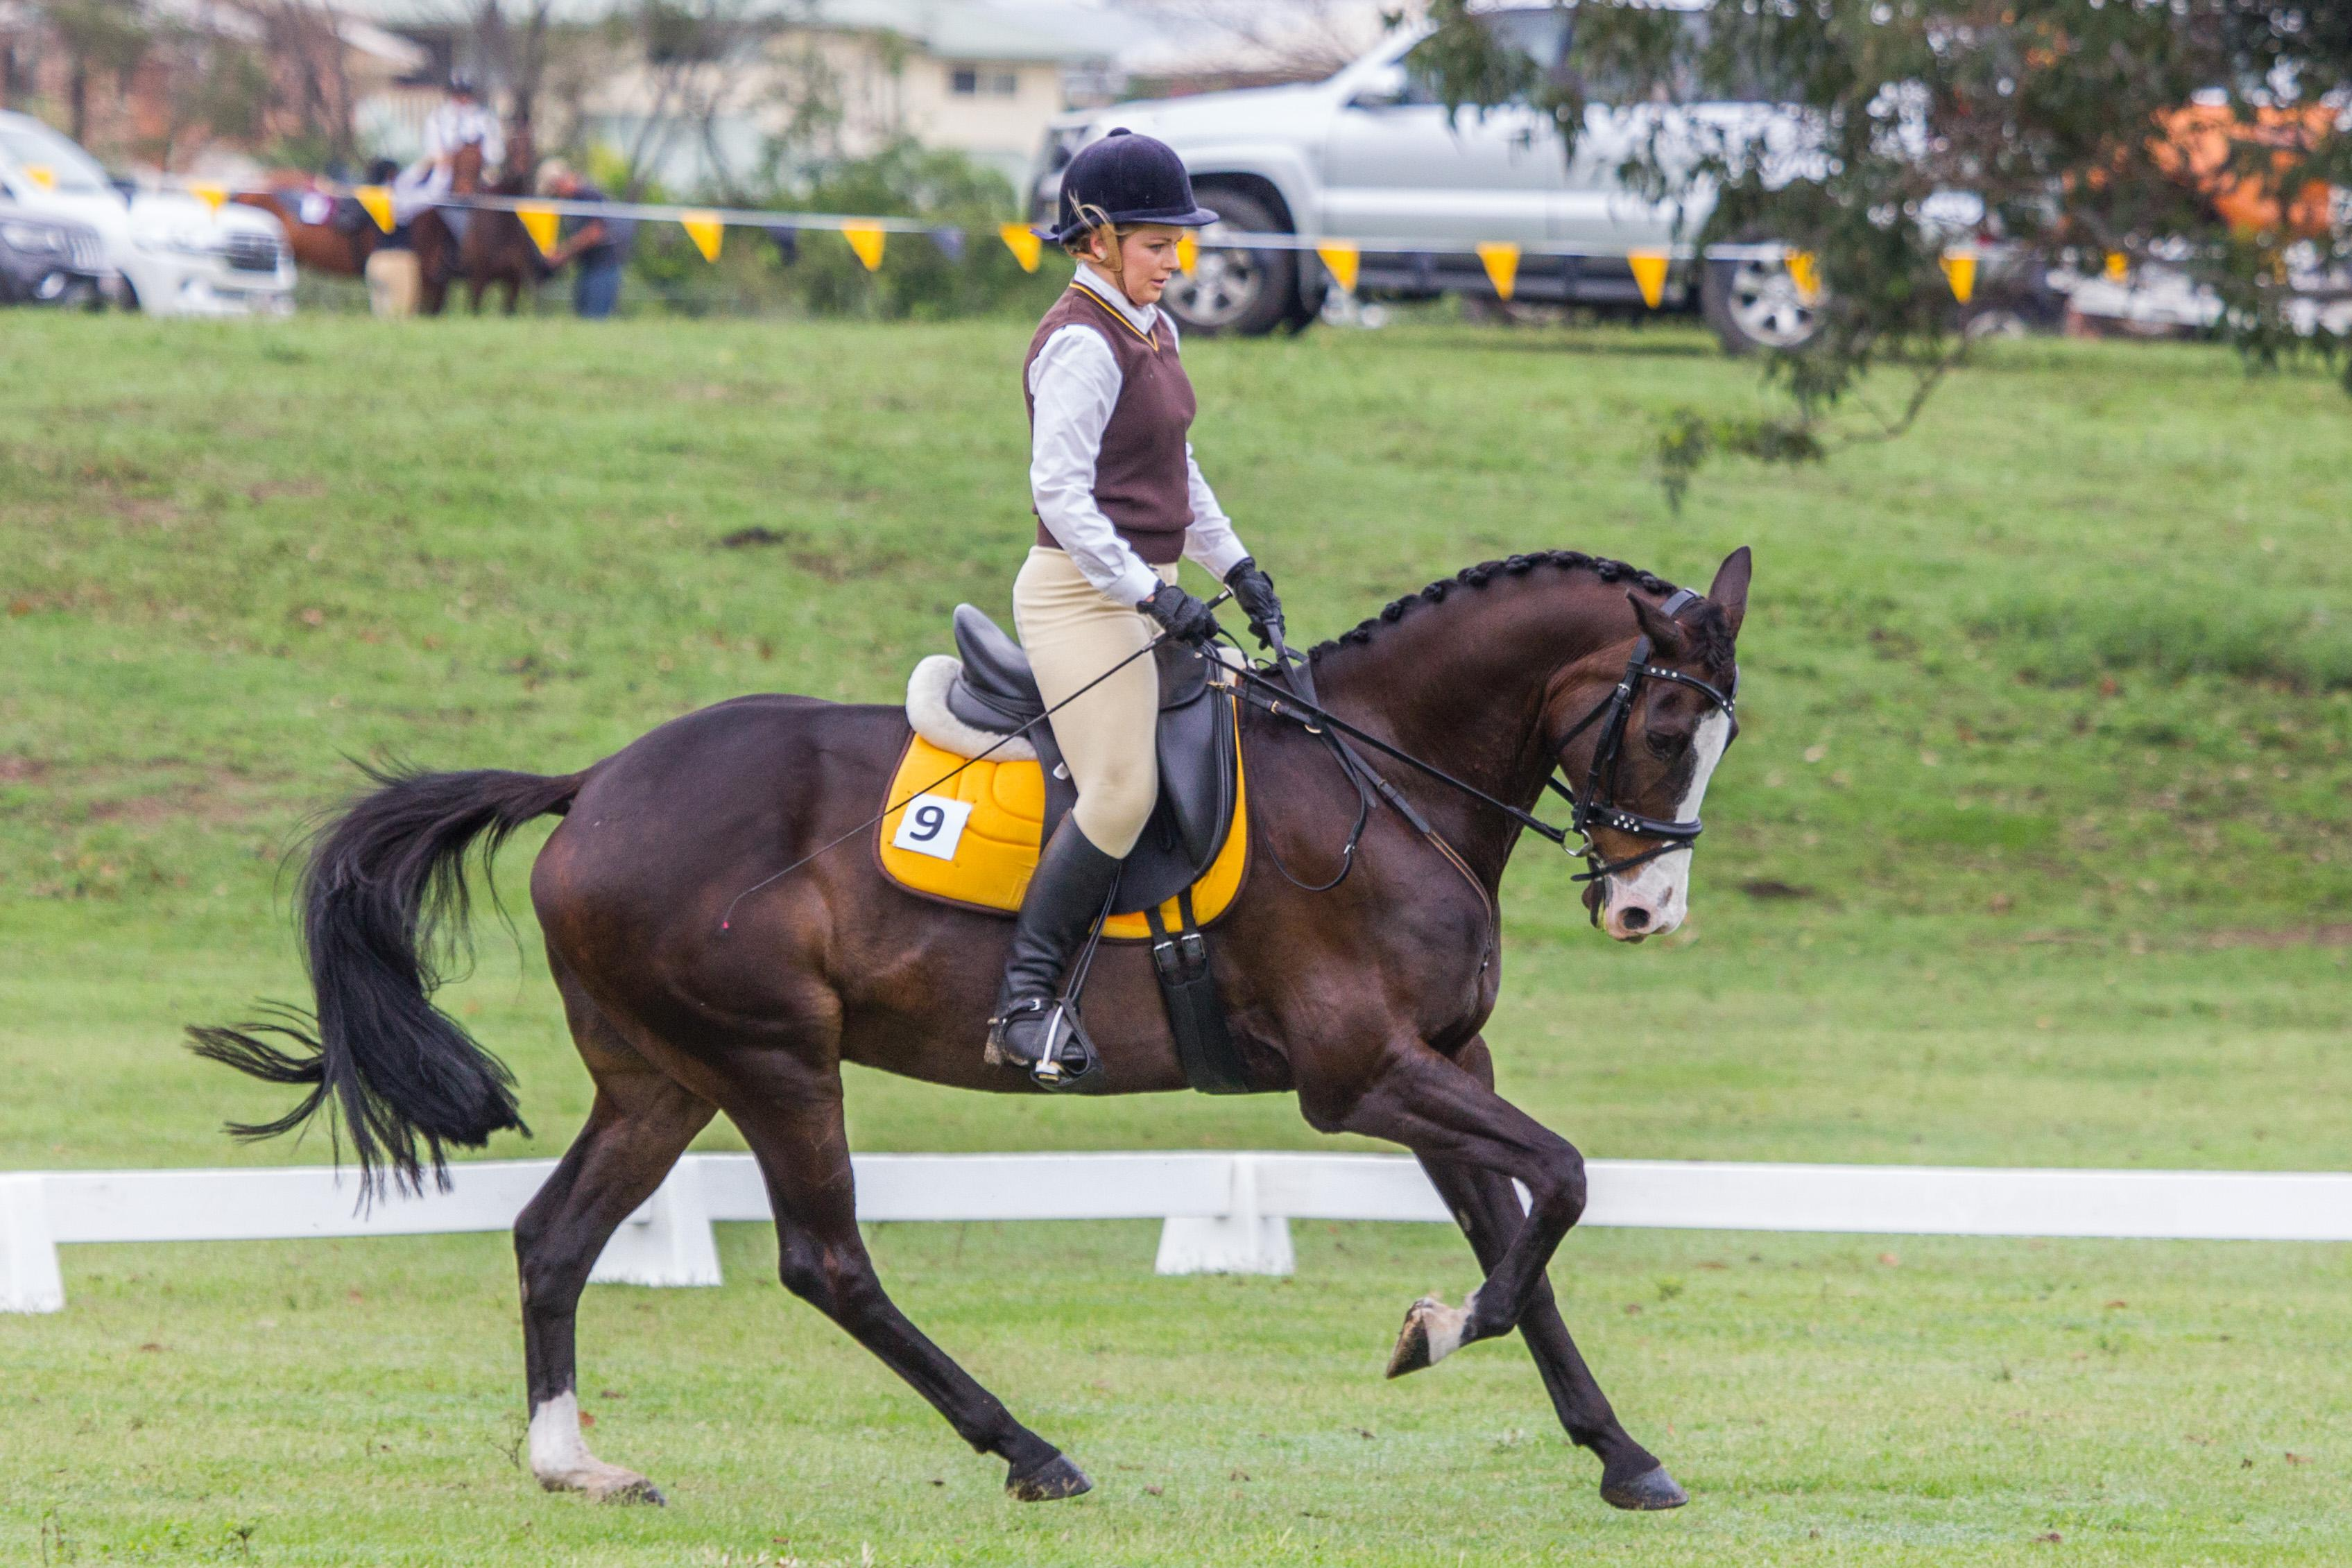 Eye-catching Dressage / Interschool Gelding